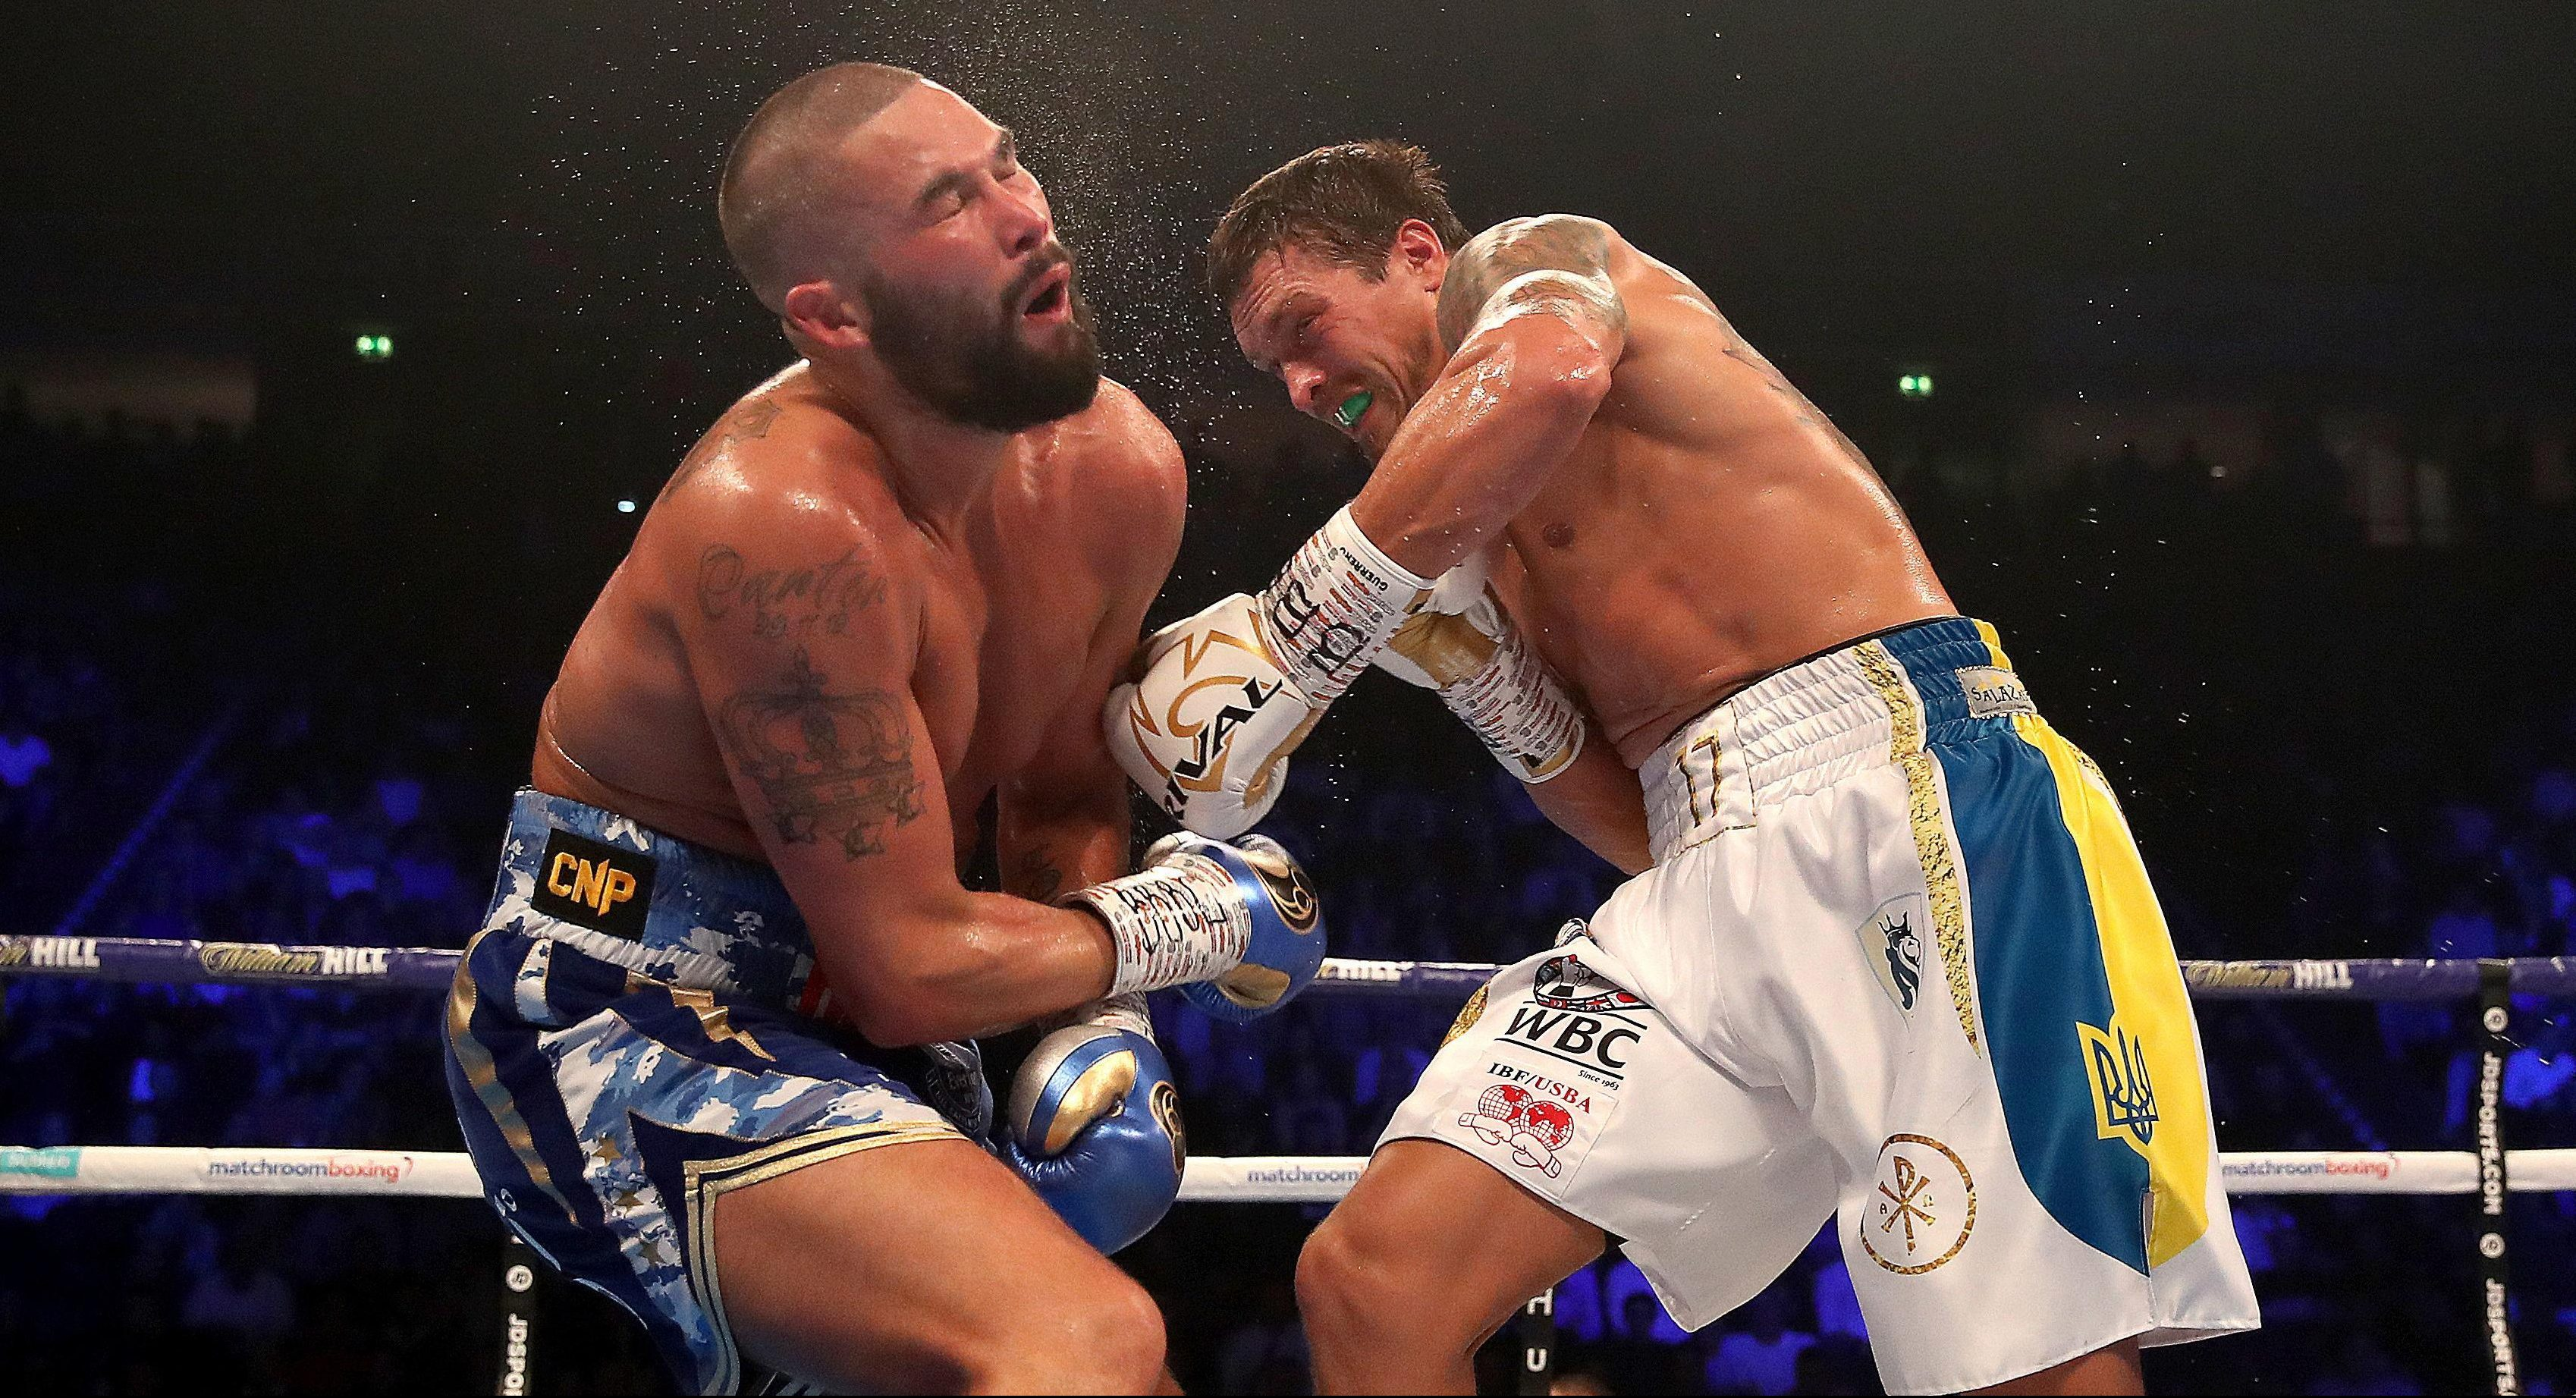 Bellew was stopped in round eight against Usyk, despite being ahead on two scorecards